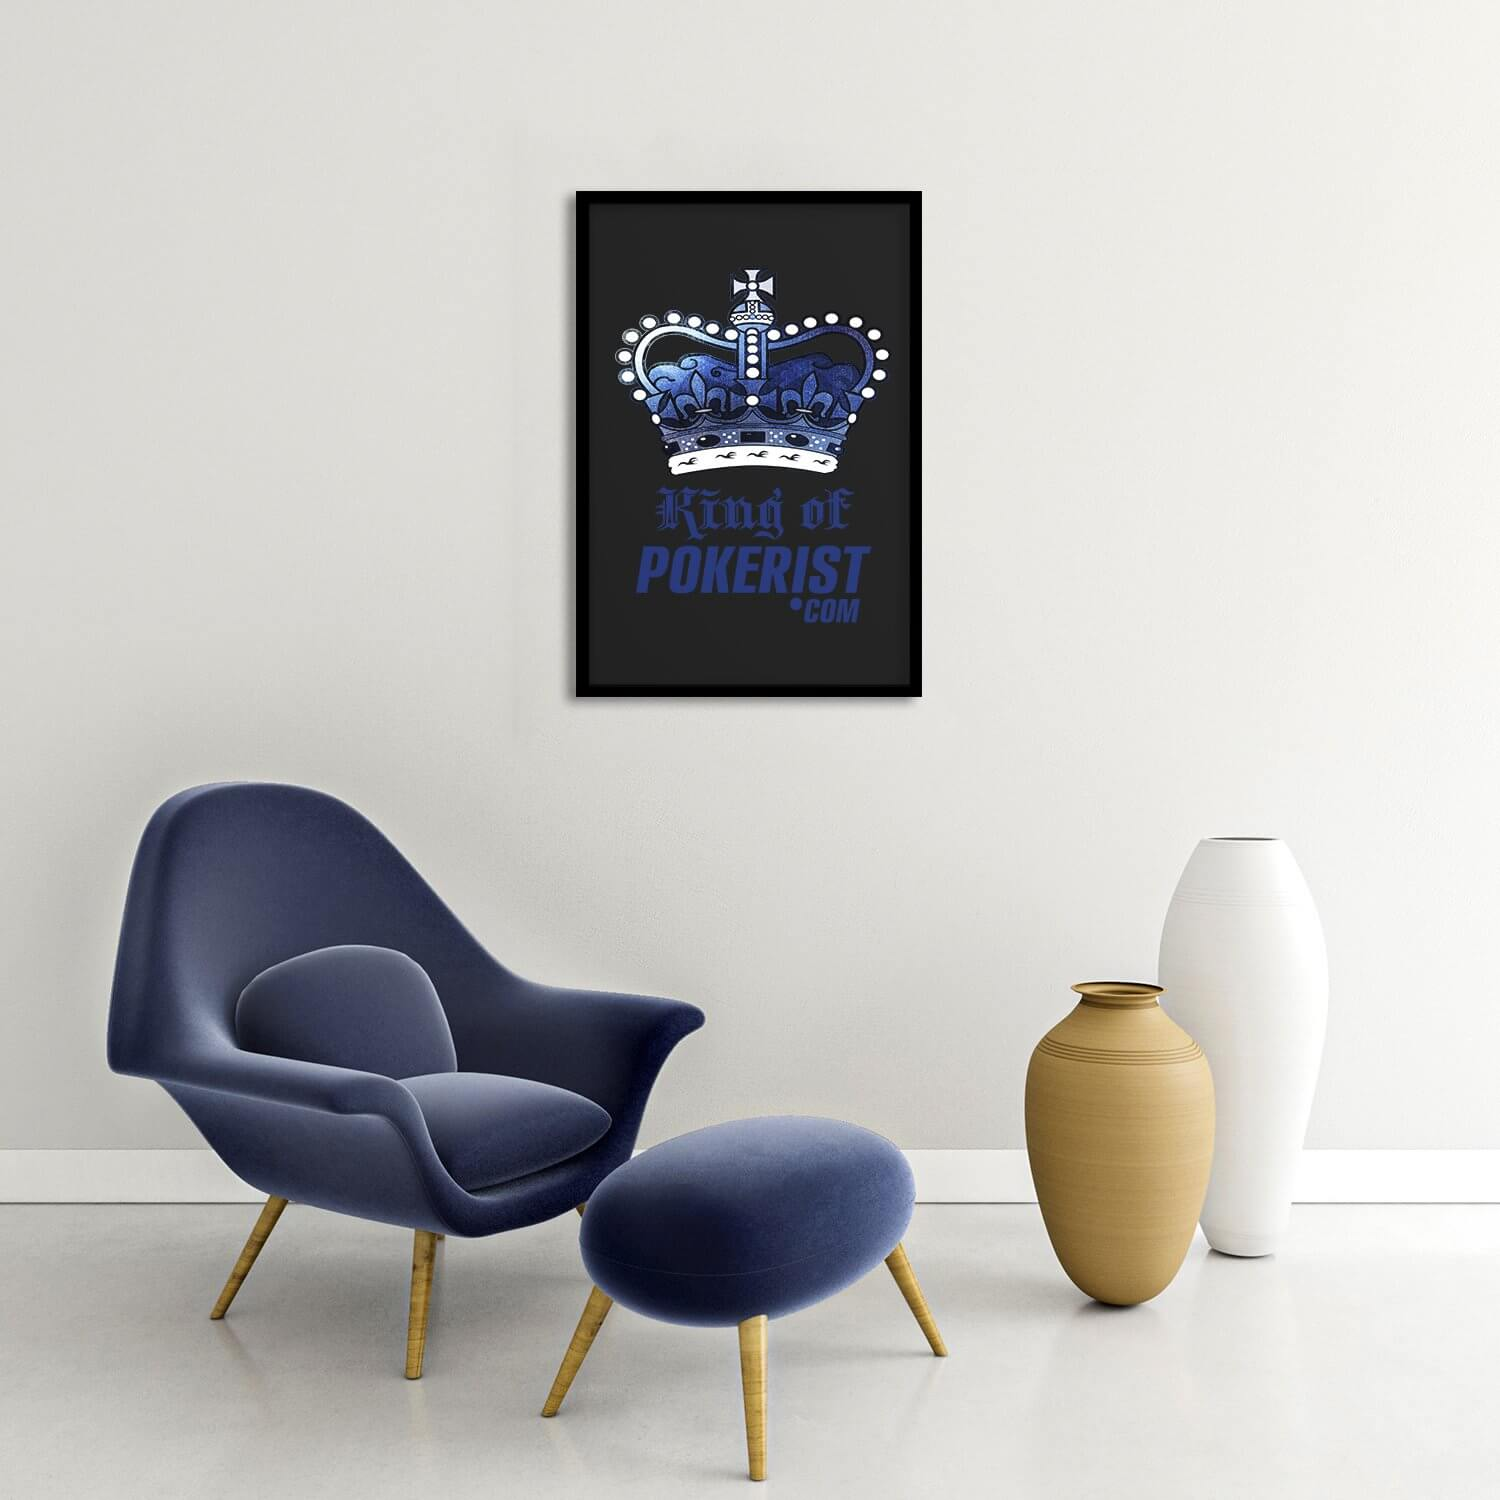 King of Pokerist Framed Poster